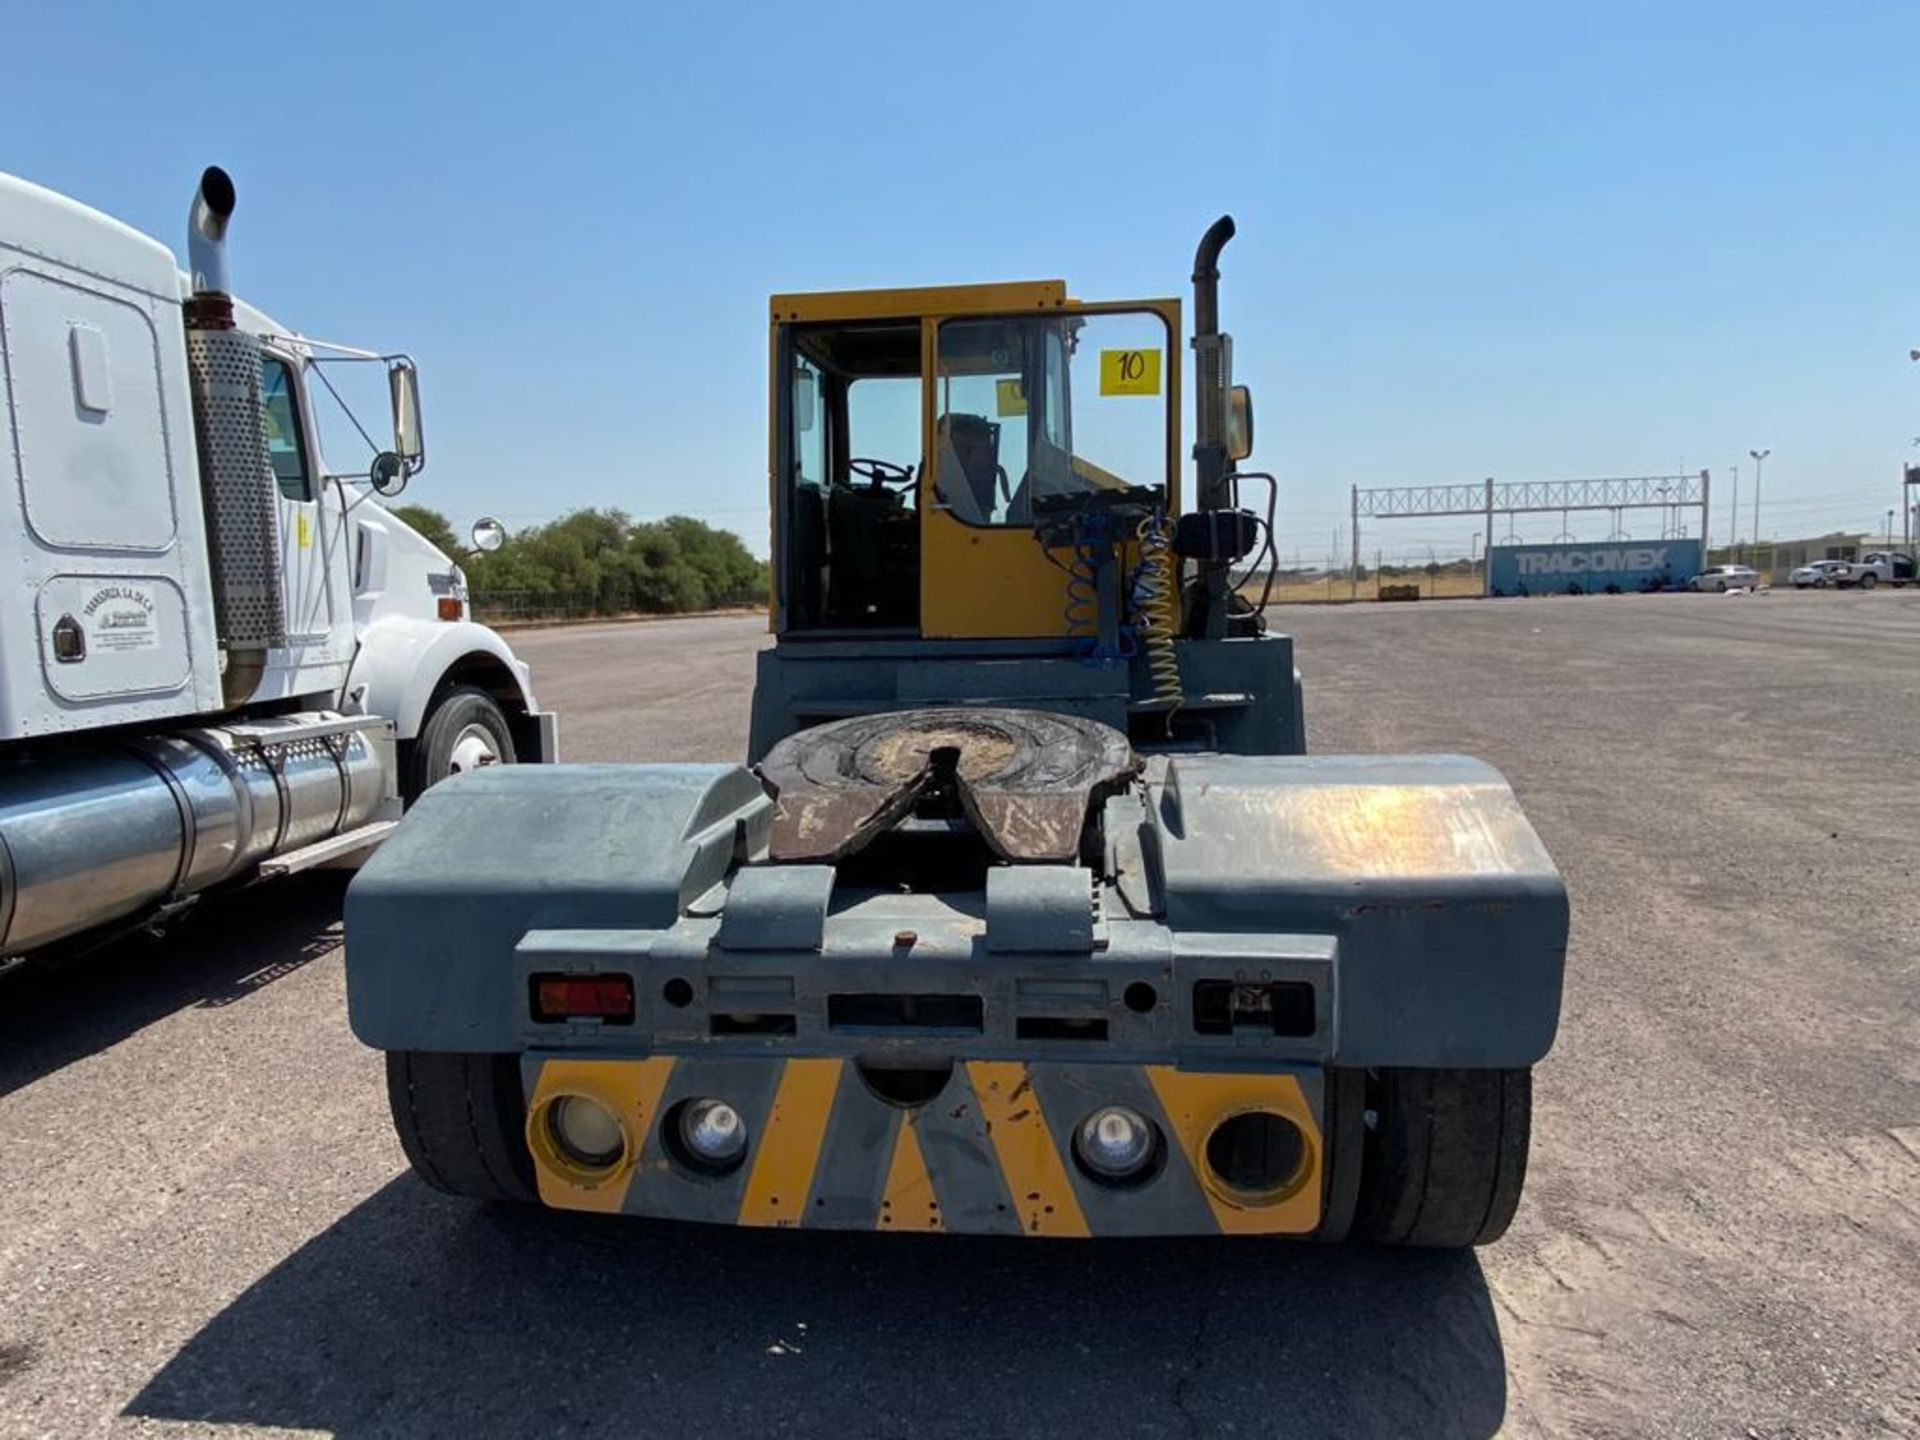 Terberg Capacity 2002 Terminal Tractor, automatic transmissio - Image 6 of 28